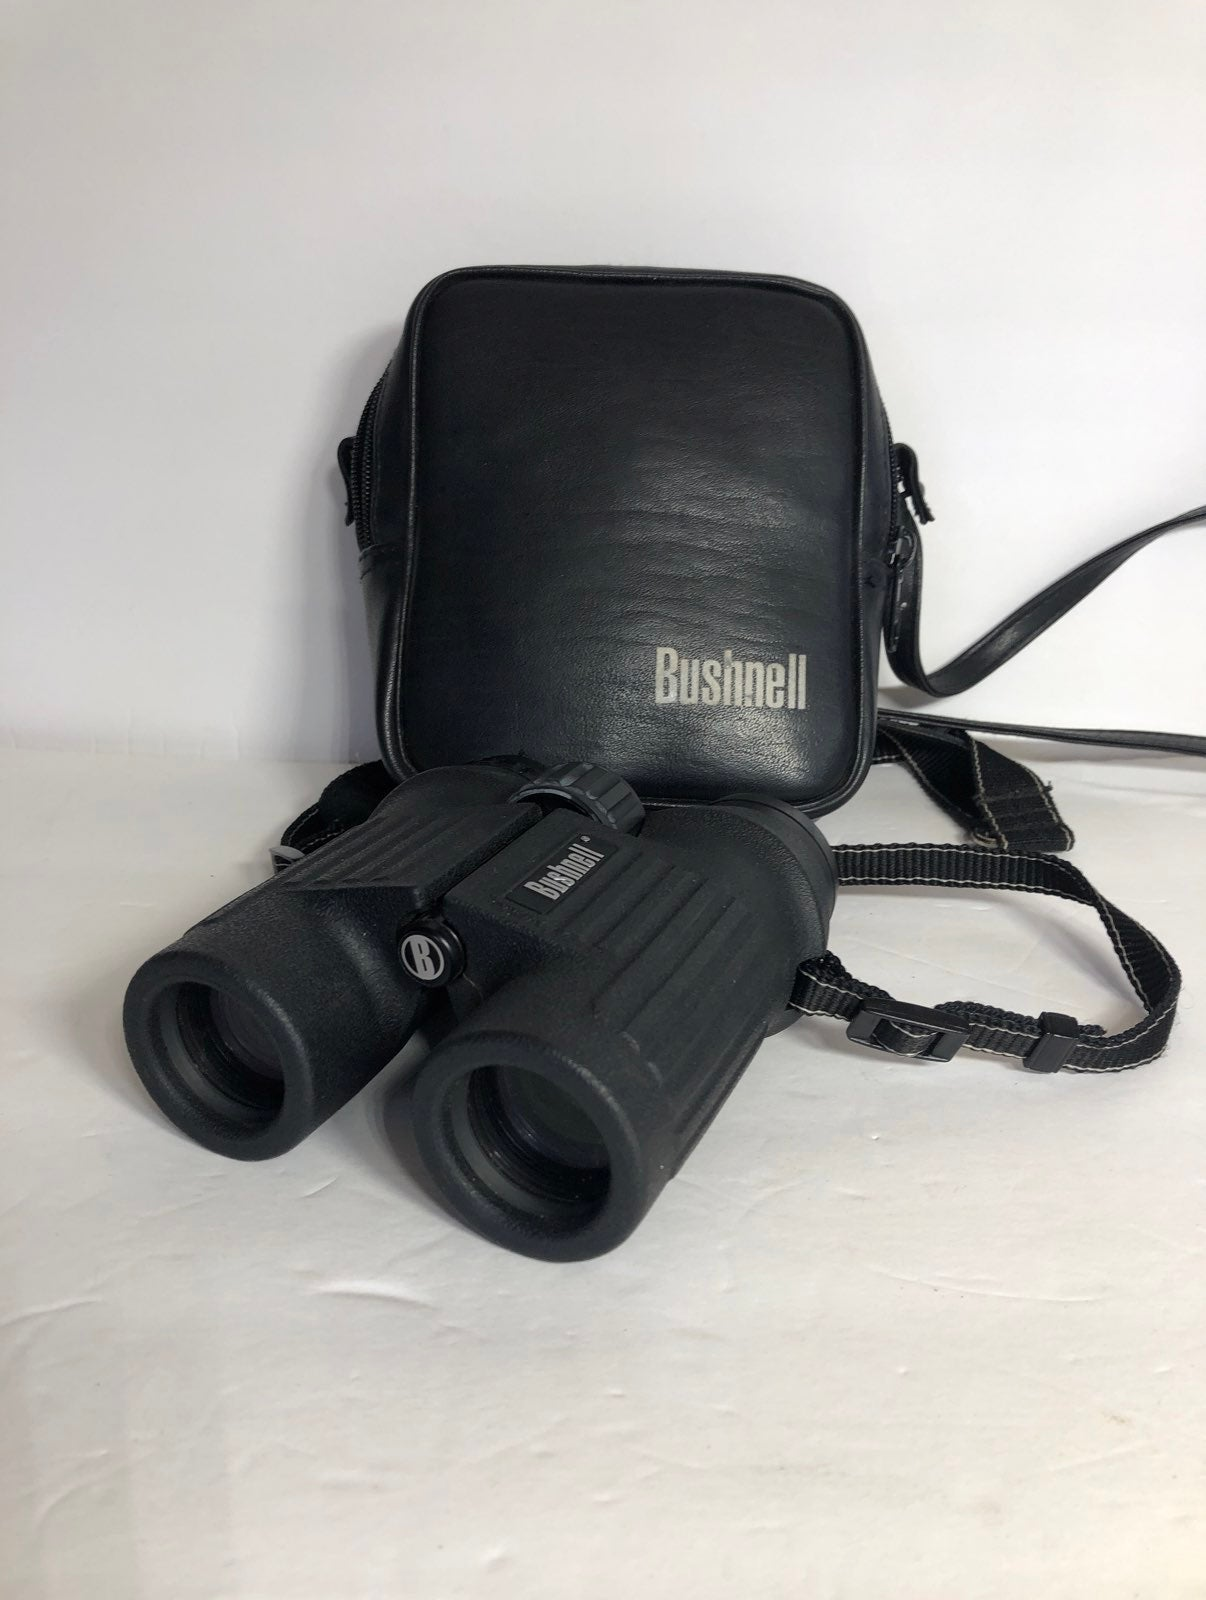 Bushnell Legend Waterproof Binoculars 8x